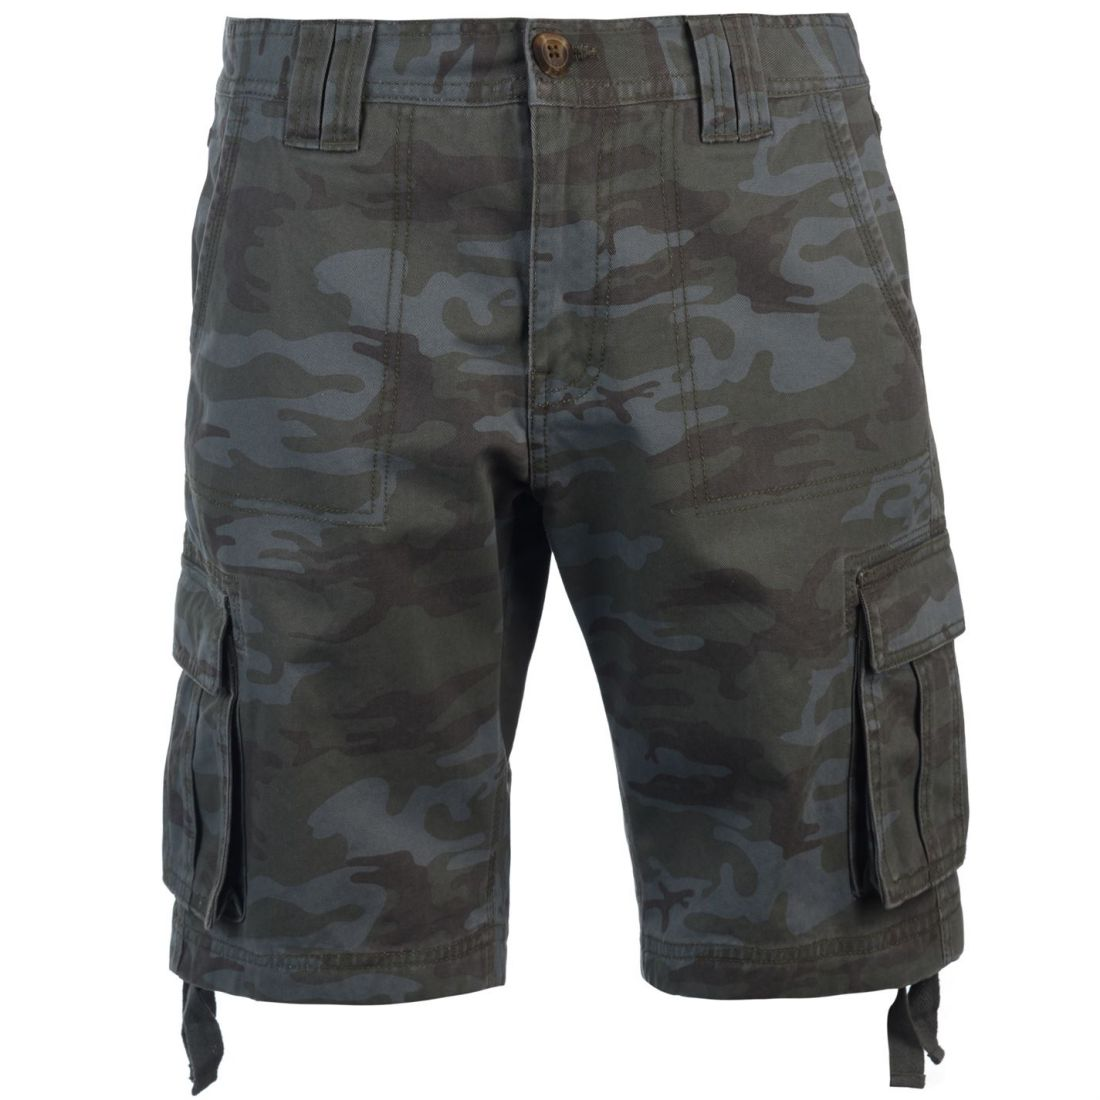 1ad4d7eb48 SoulCal-Mens-Utility-Shorts-Cargo-Pants-Trousers-Bottoms thumbnail